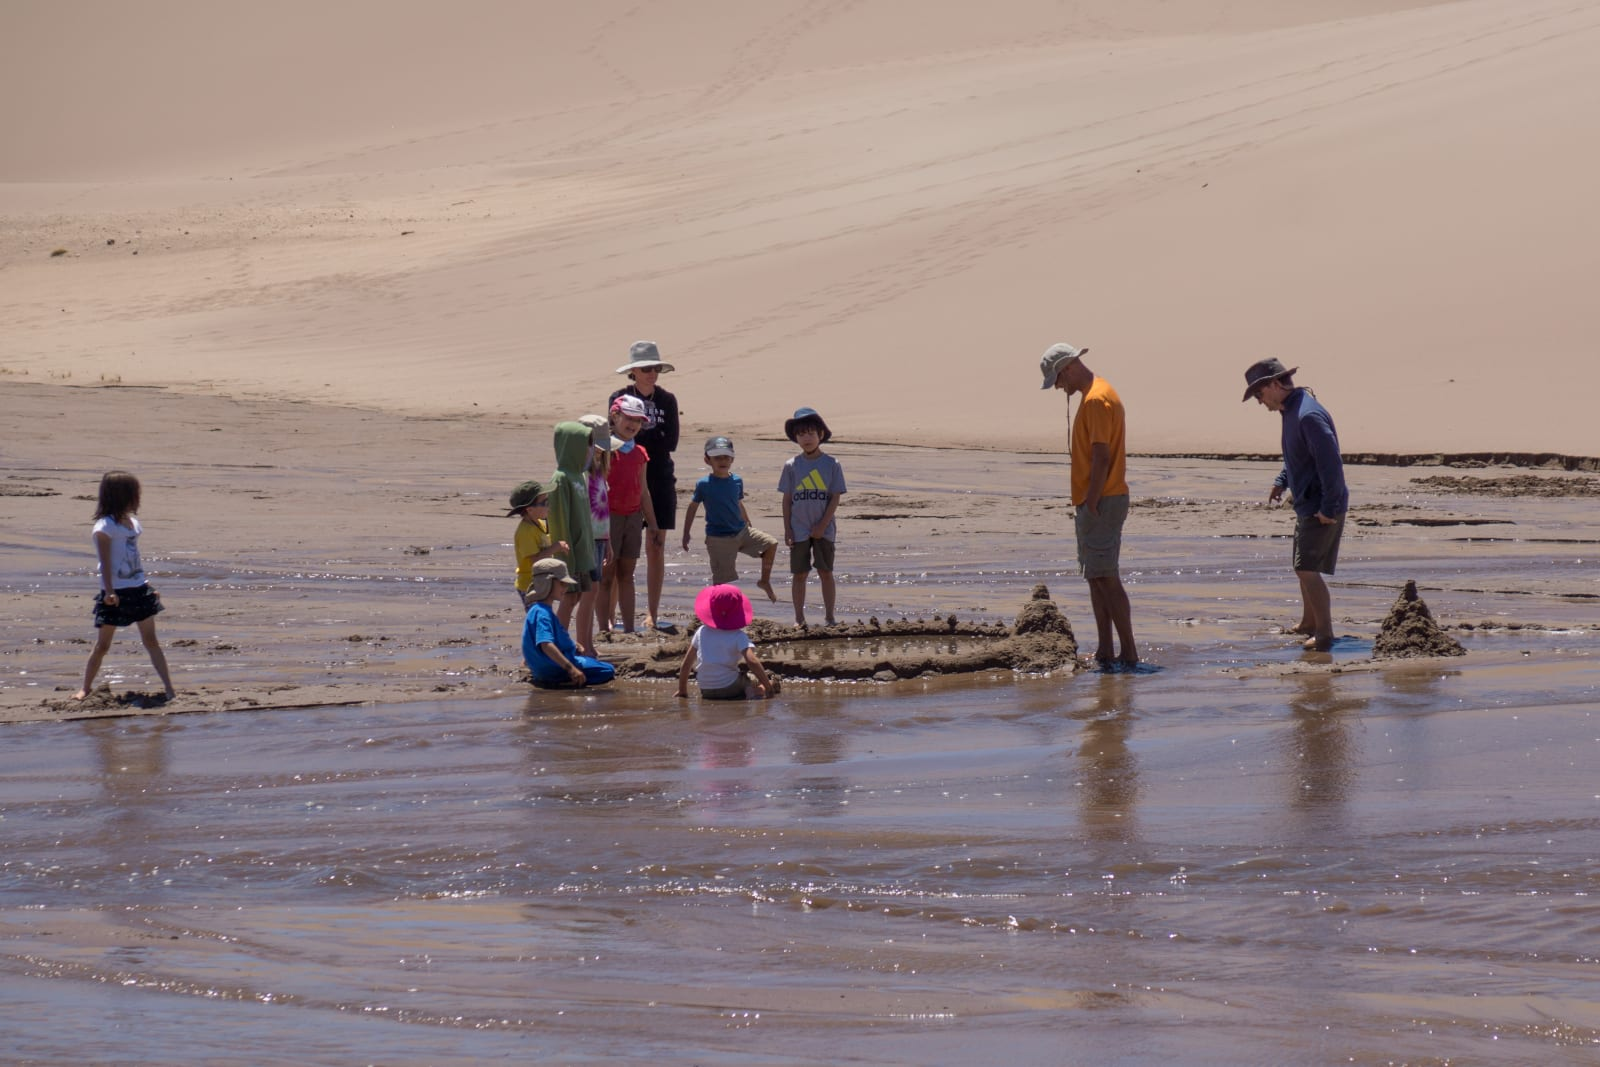 Kid Friendly Activity Great Sand Dunes Medano Creek Families Playing